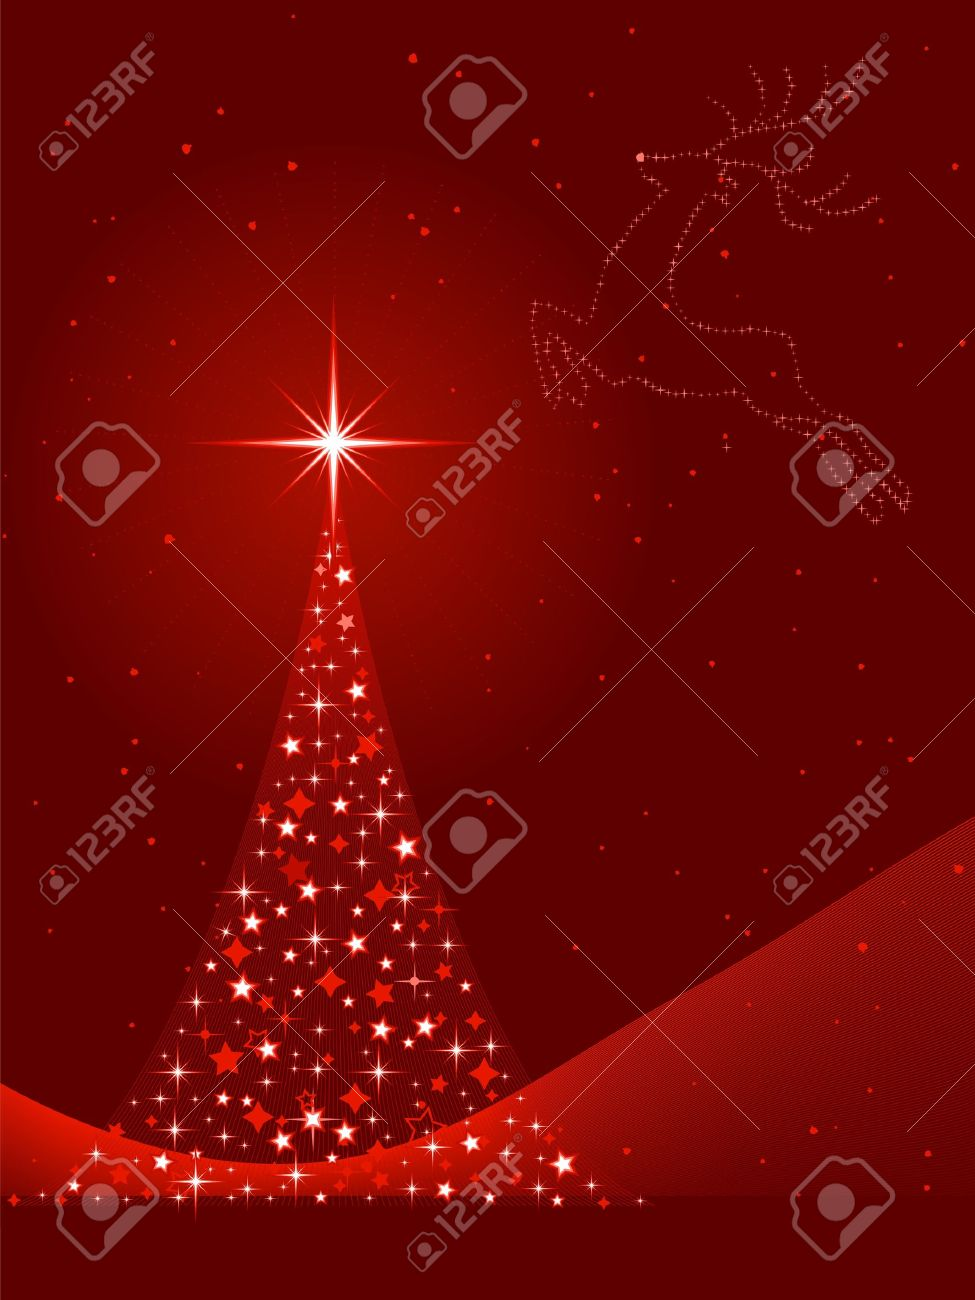 Vertical Red Background For Christmas New Years Eve Showing